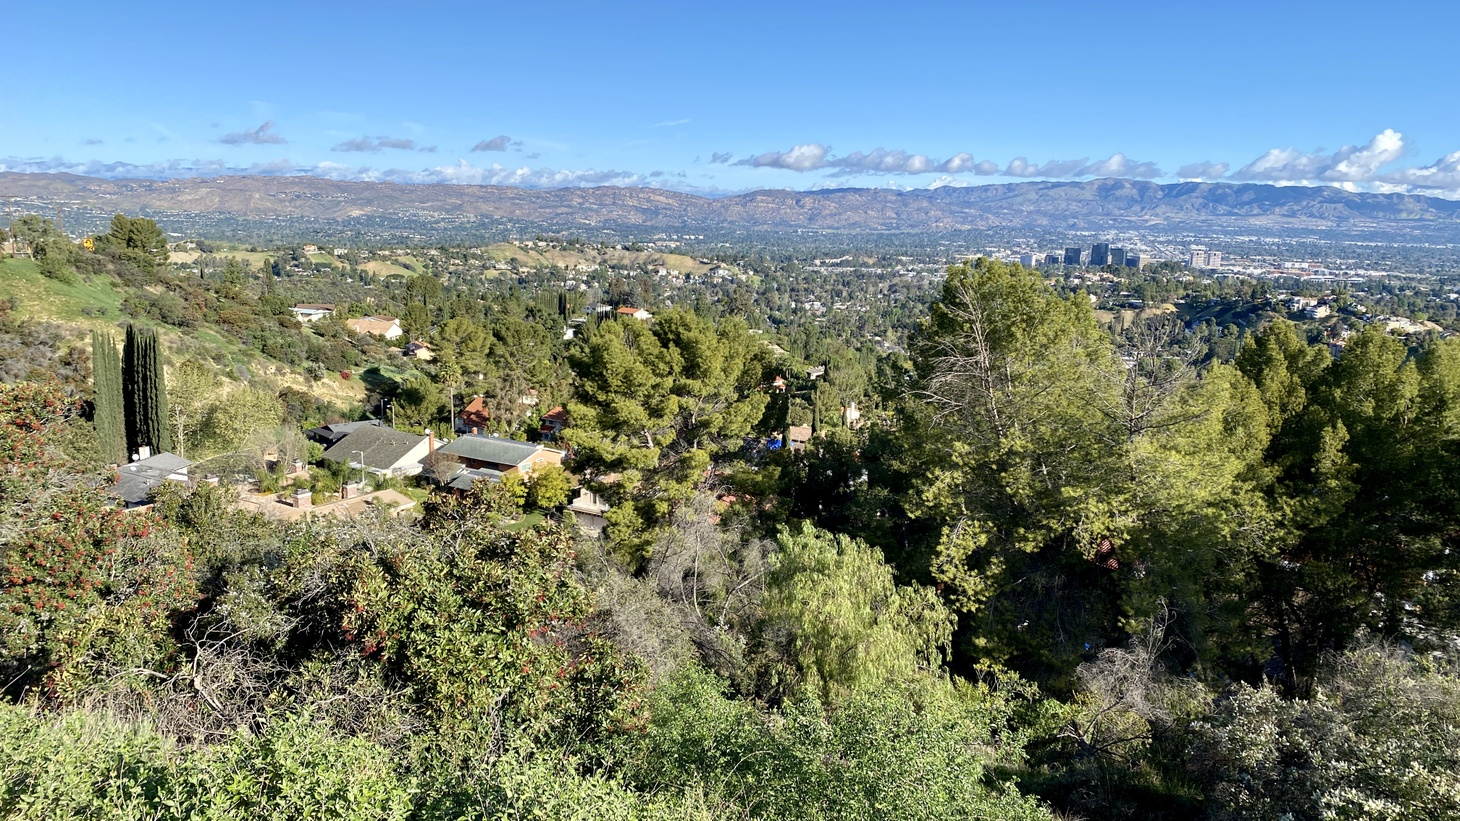 The view of Los Angeles from Topanga Canyon overlook. Skies in LA have been cleaner as residents are staying home due to COVID-19. How can we maintain environmental gains when the economy is reopened? March 2020.